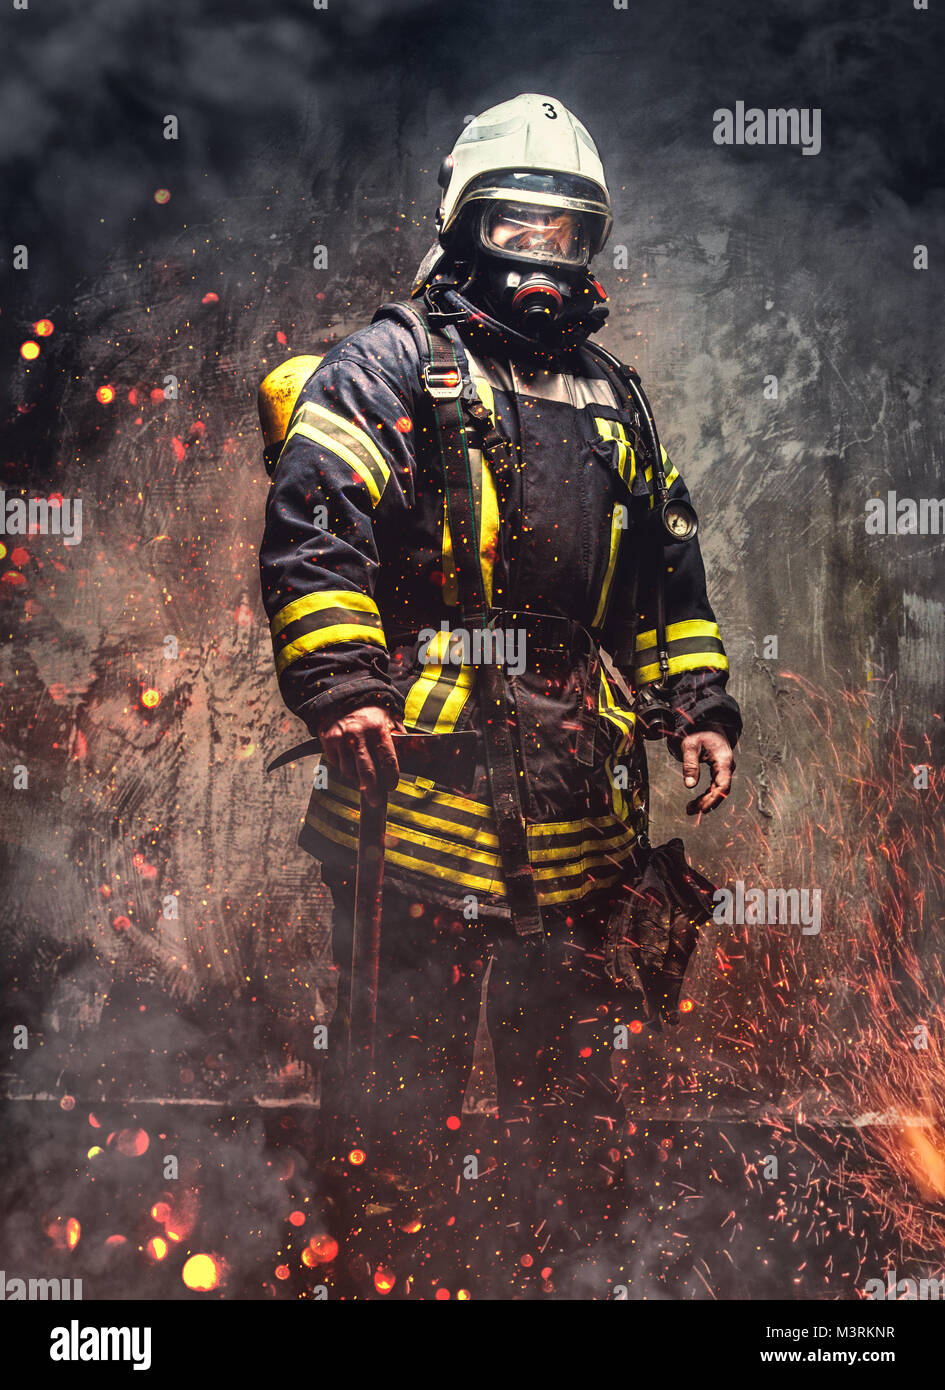 Rescue man in firefighter uniform. - Stock Image